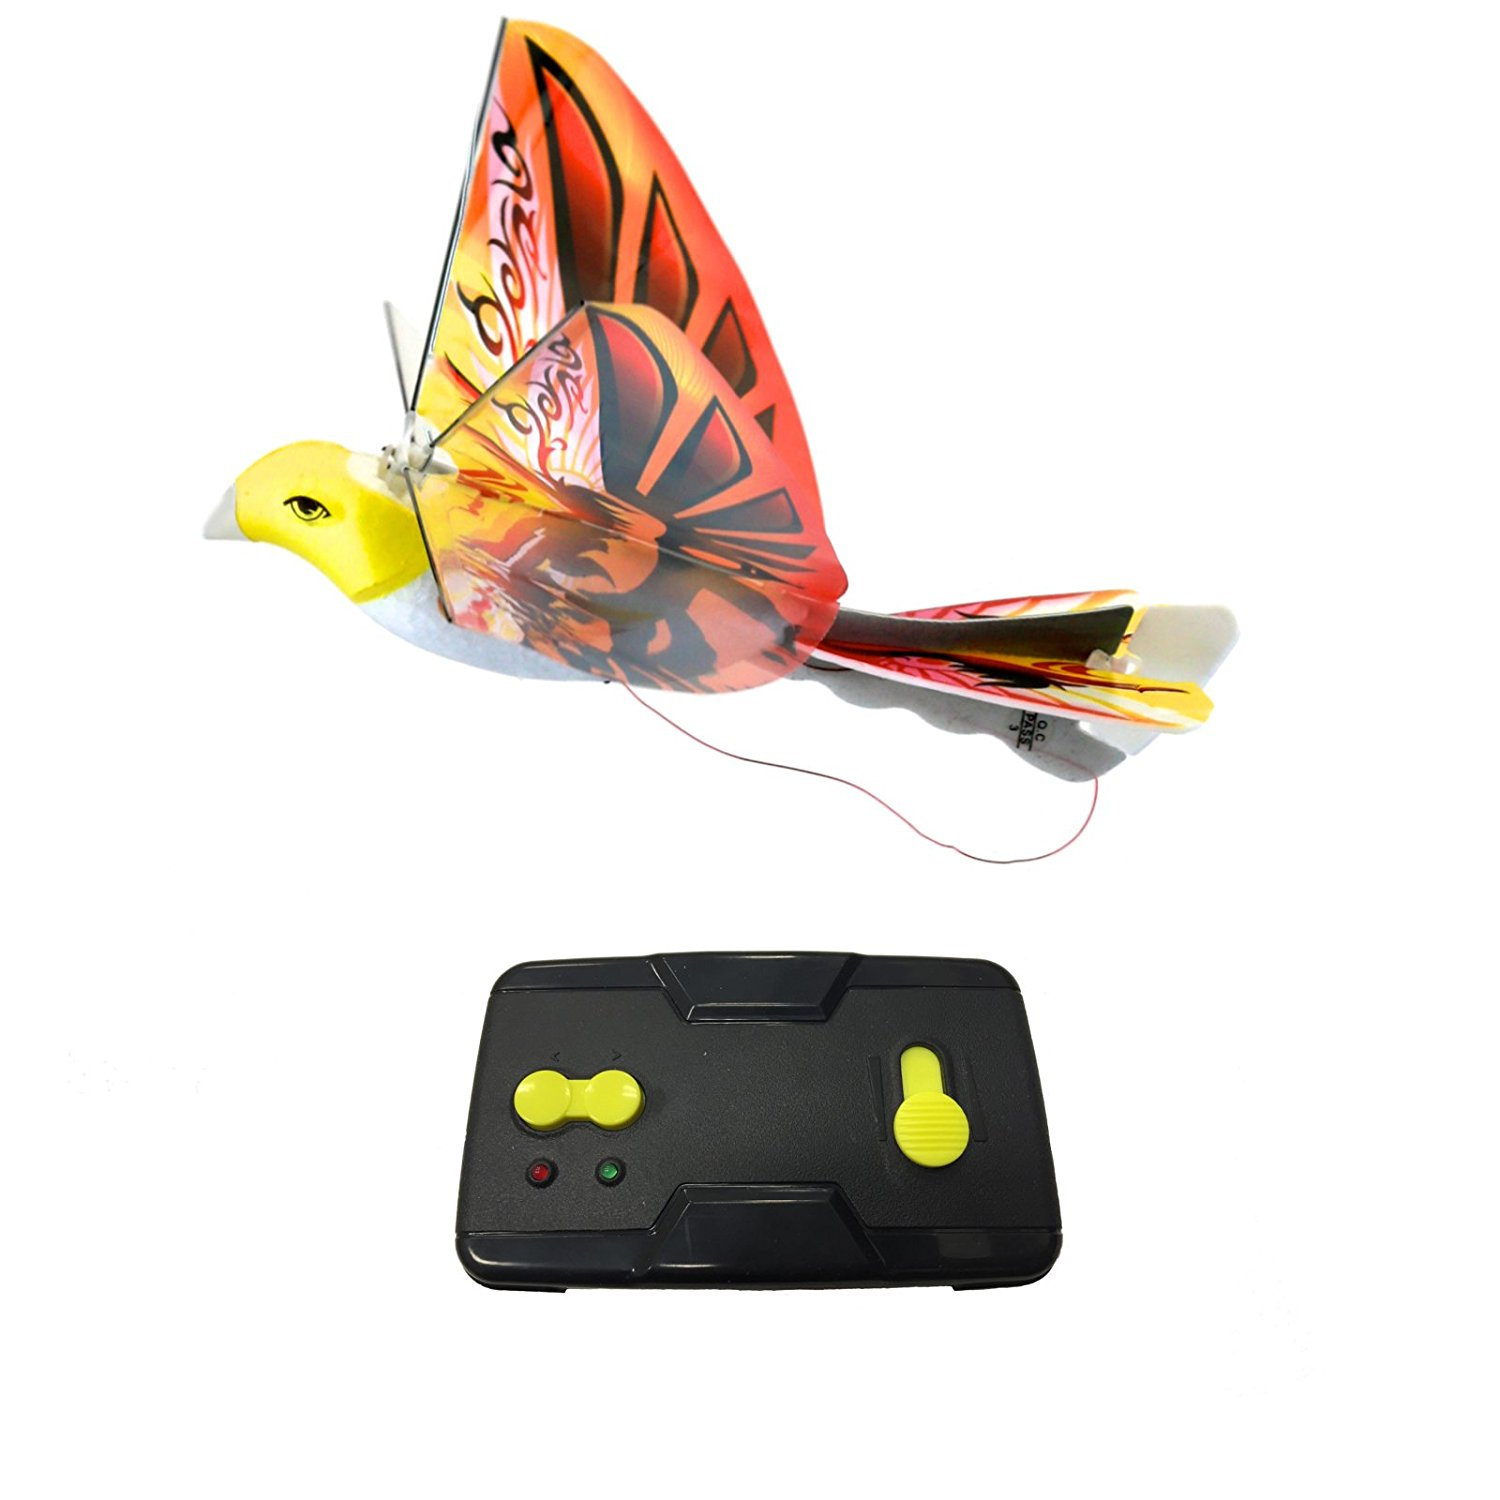 eBird Orange Phoenix - 2016 Creative Child Preferred Choice Award Winning Flying RC Toy - Remote Control Bionic Bird (Newest 2.4GHz Version Featuring USB Charging)